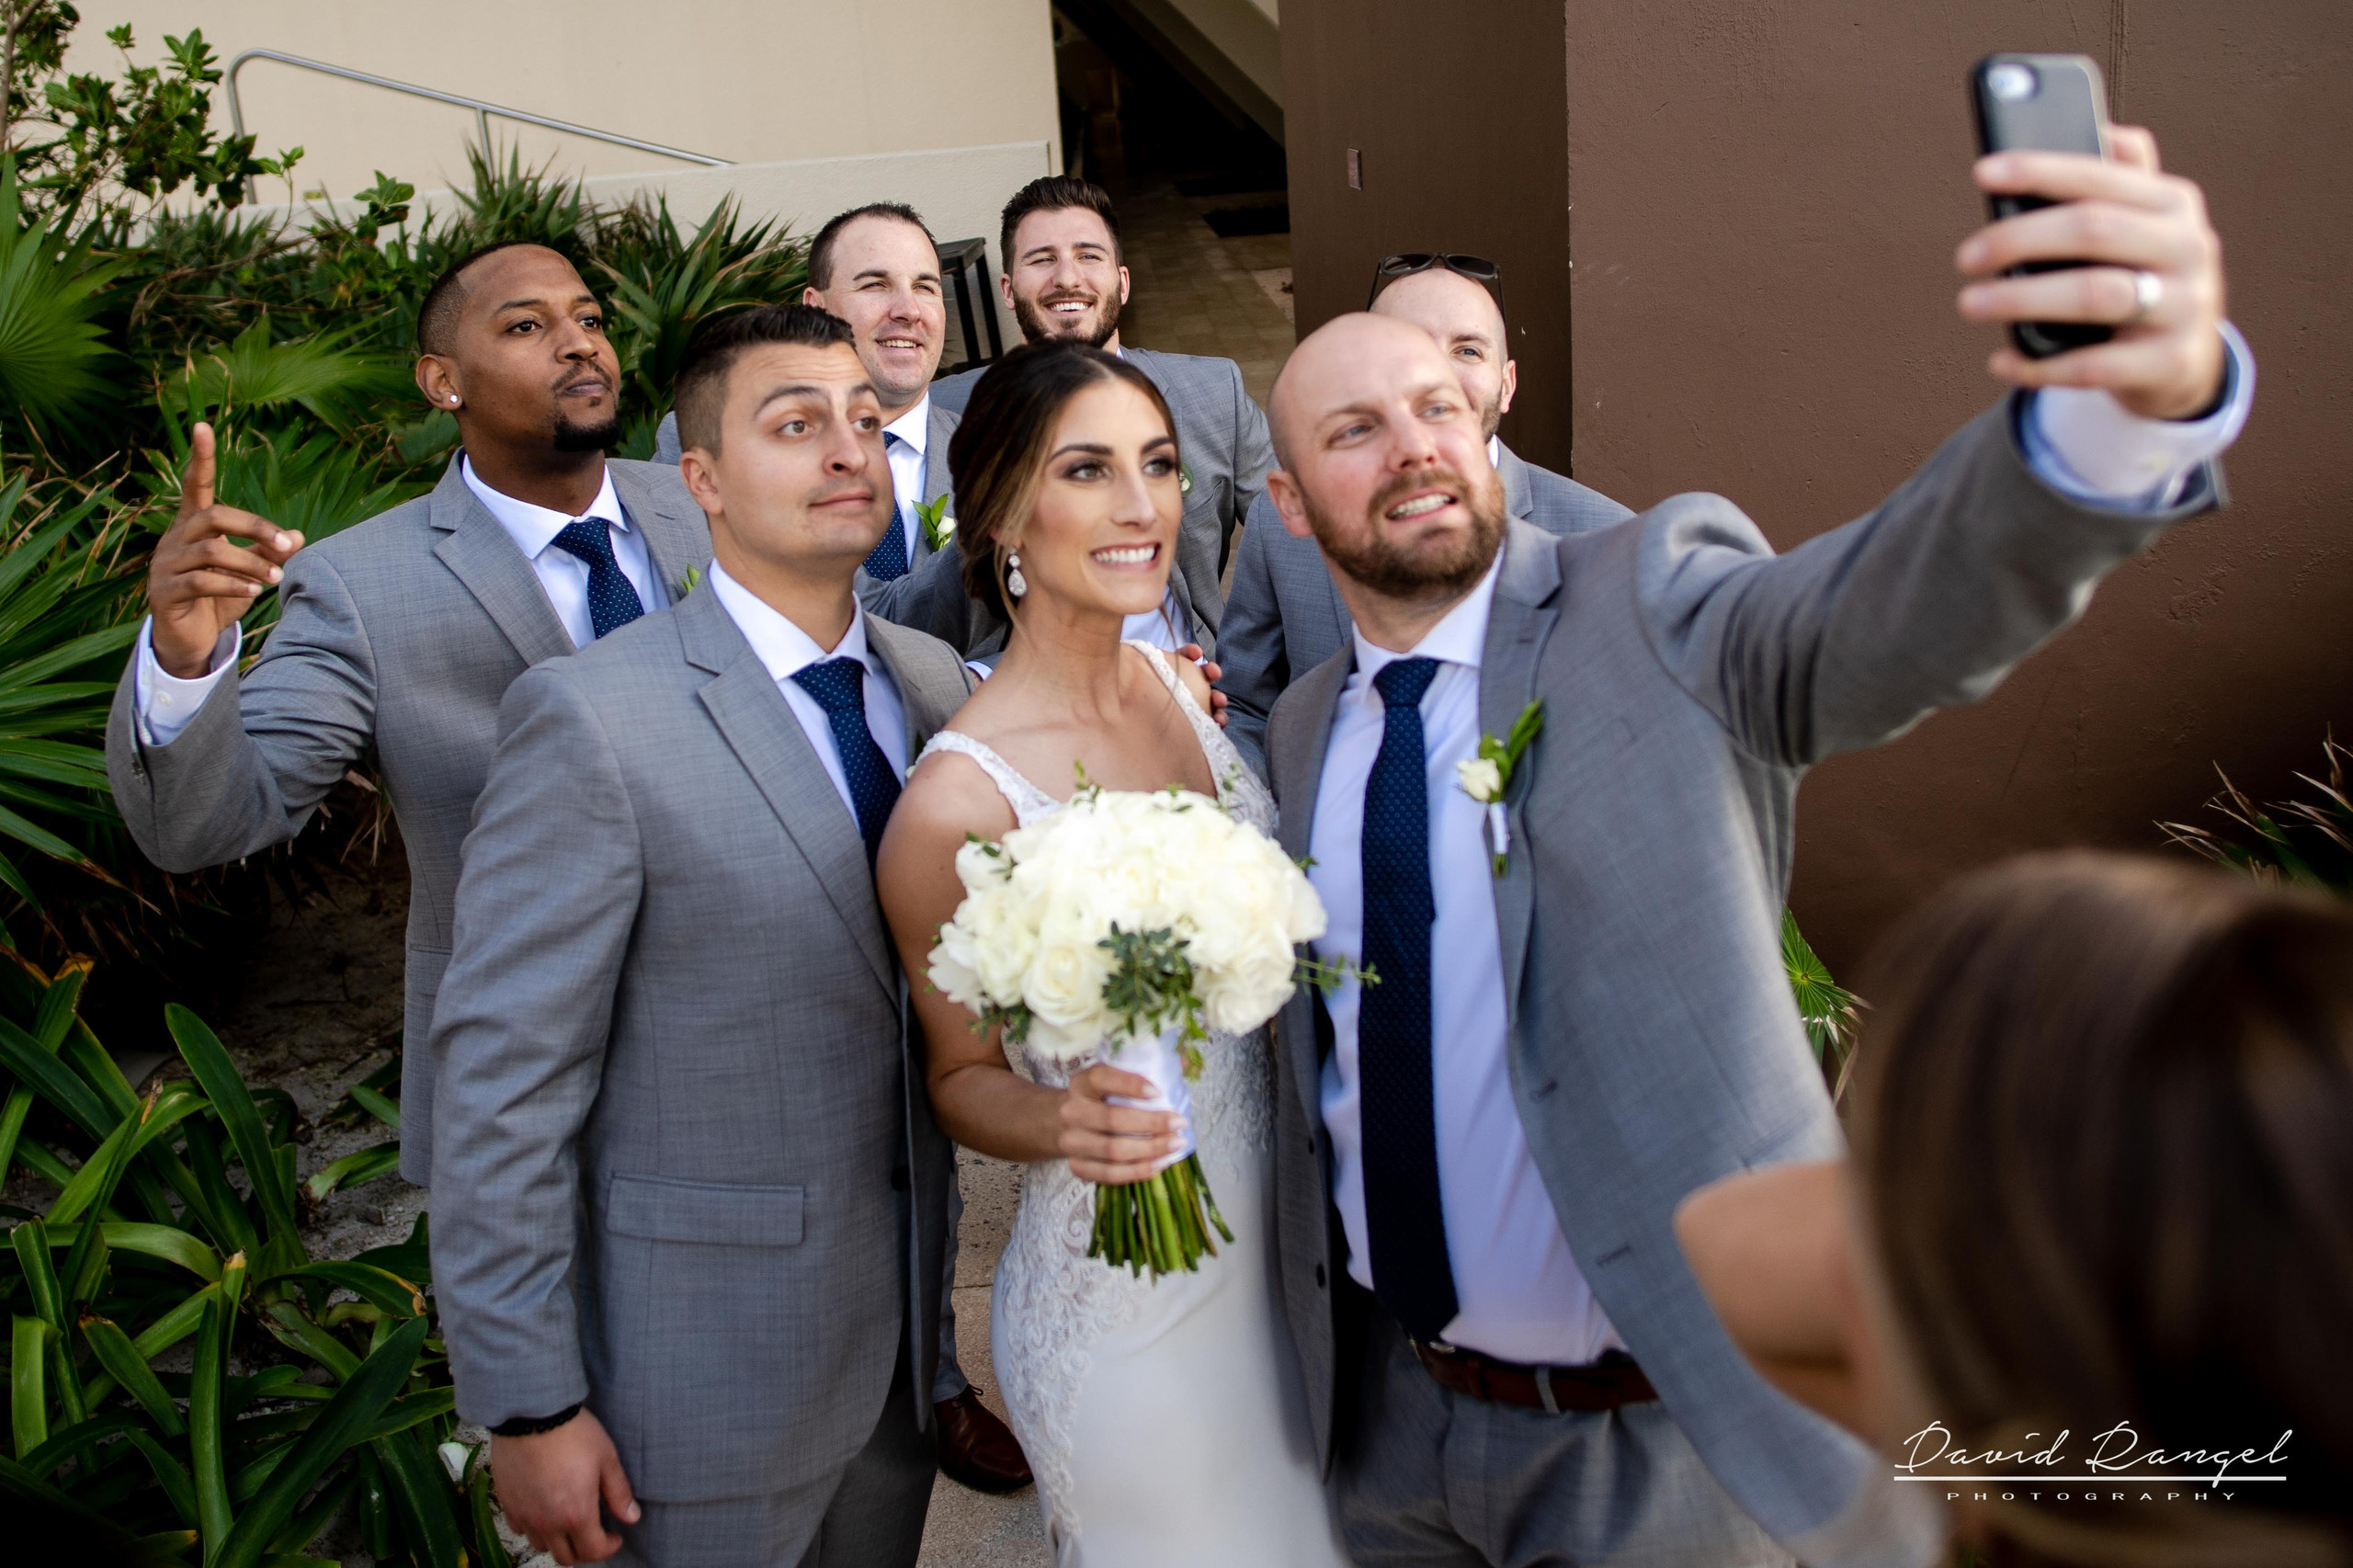 +bride+groom+wedding+selfi+photo+groomsmen